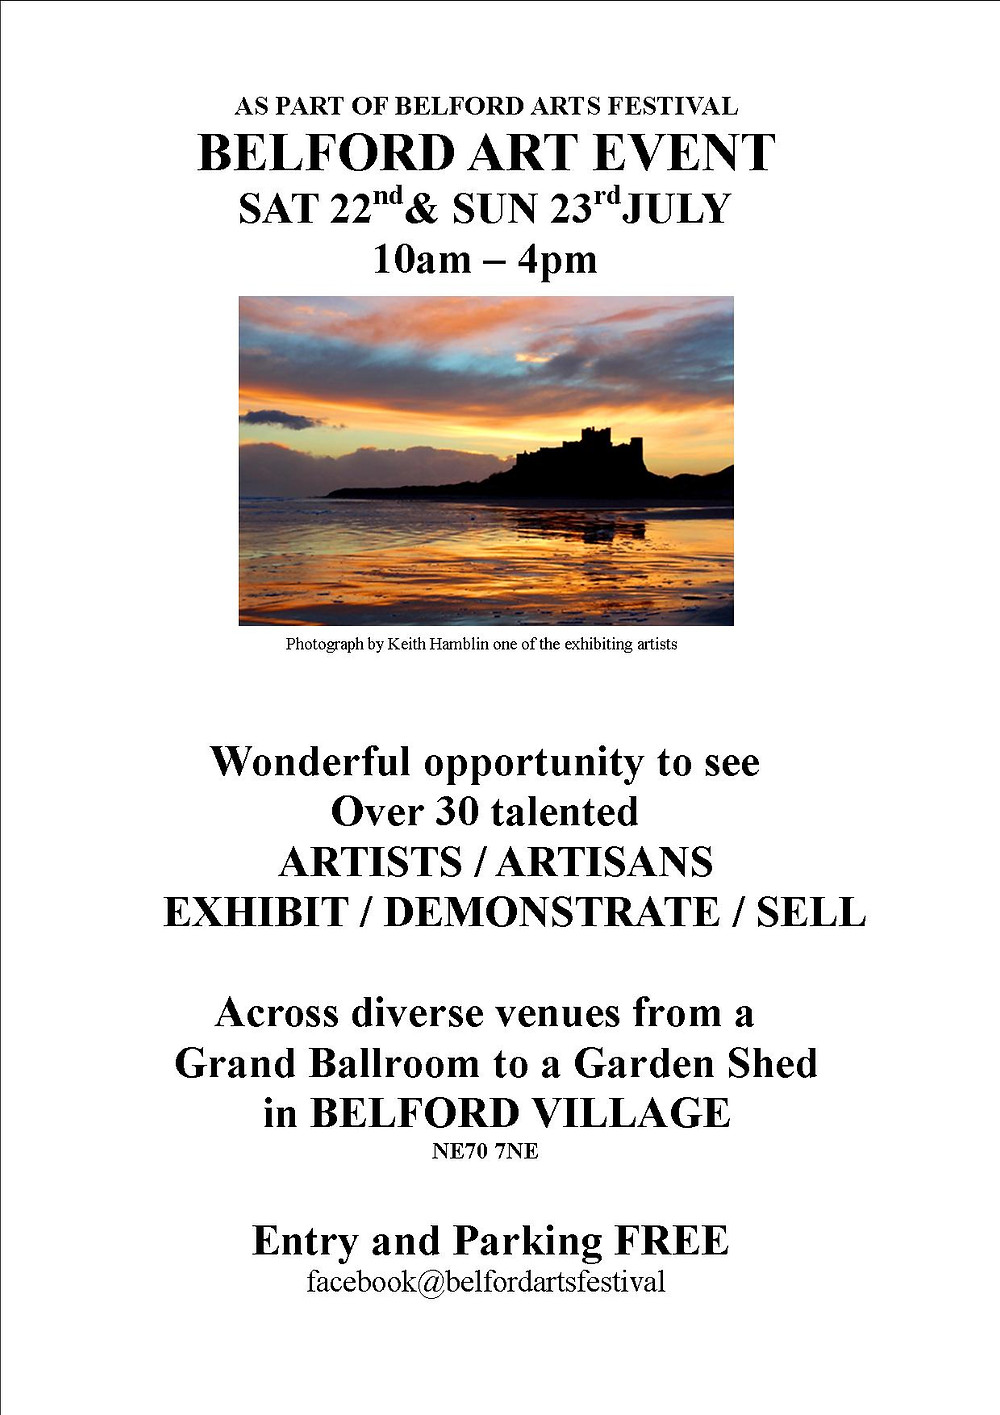 I will be exhibiting some new work here at this art festival in Belford Village. Support your local artists